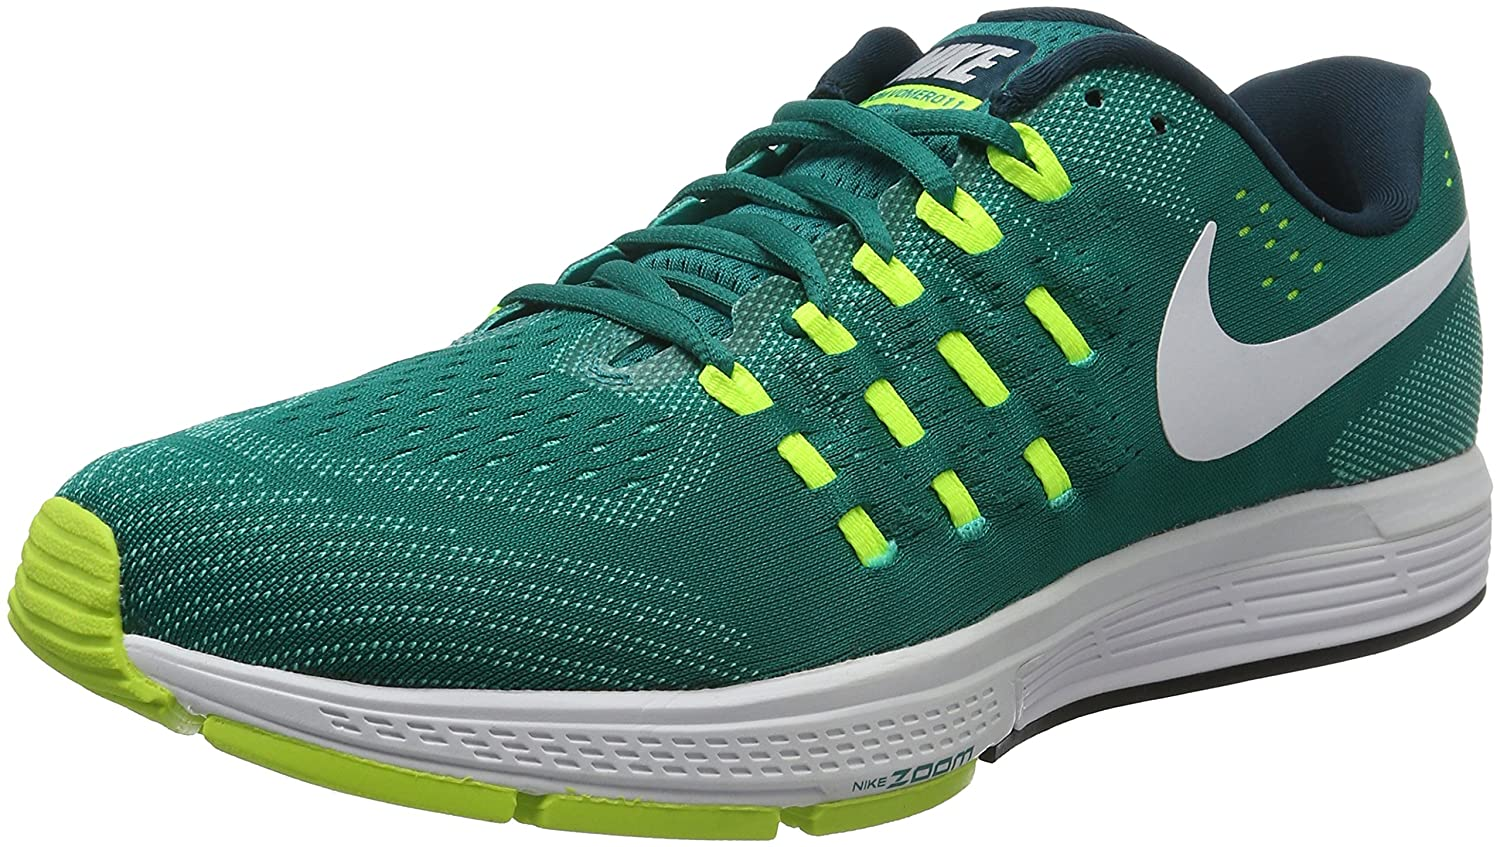 Nike Men's Air Zoom Vomero 11 Running Shoes B01GE1L0WA 12 D(M) US|Rio Teal / White - Volt - Clear Jade